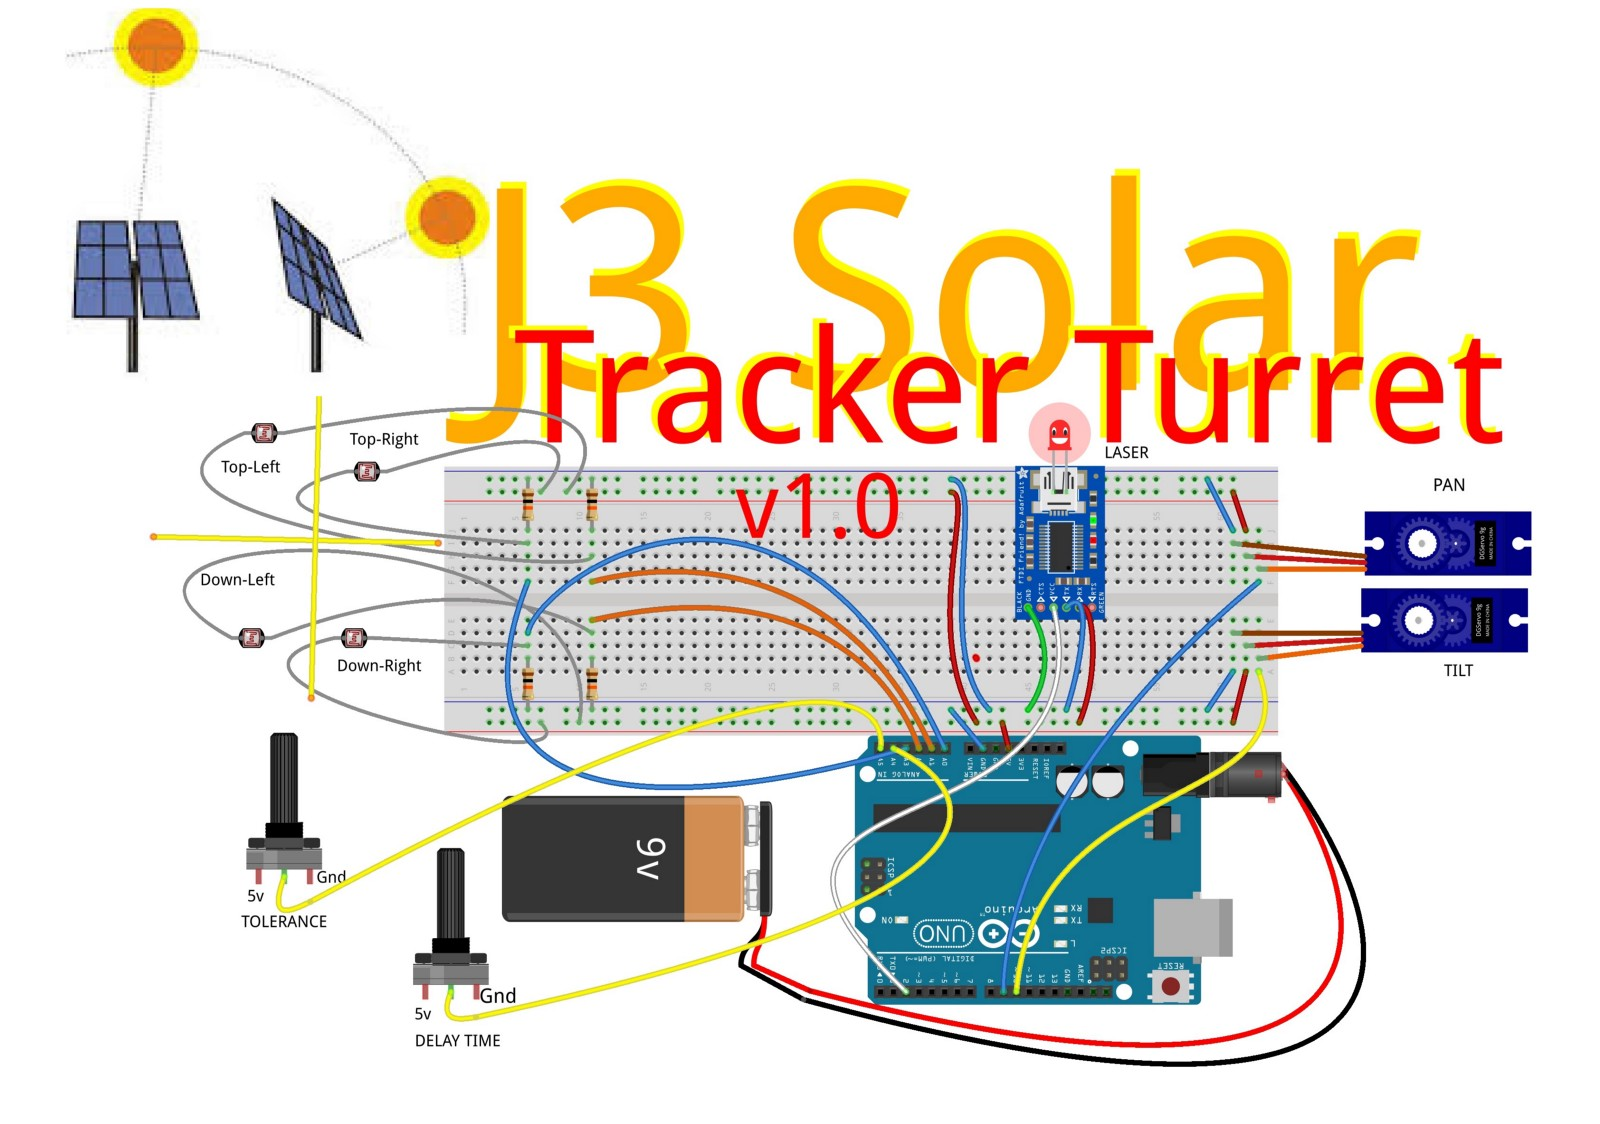 J3 Solar Tracker Turret V10 Jungletronics Medium Circuit The Two Potentiometers Are Tolerance And Delay Time Of Loop We Managed To Regulate This On Basis Trial Error Is Easy Trust Me